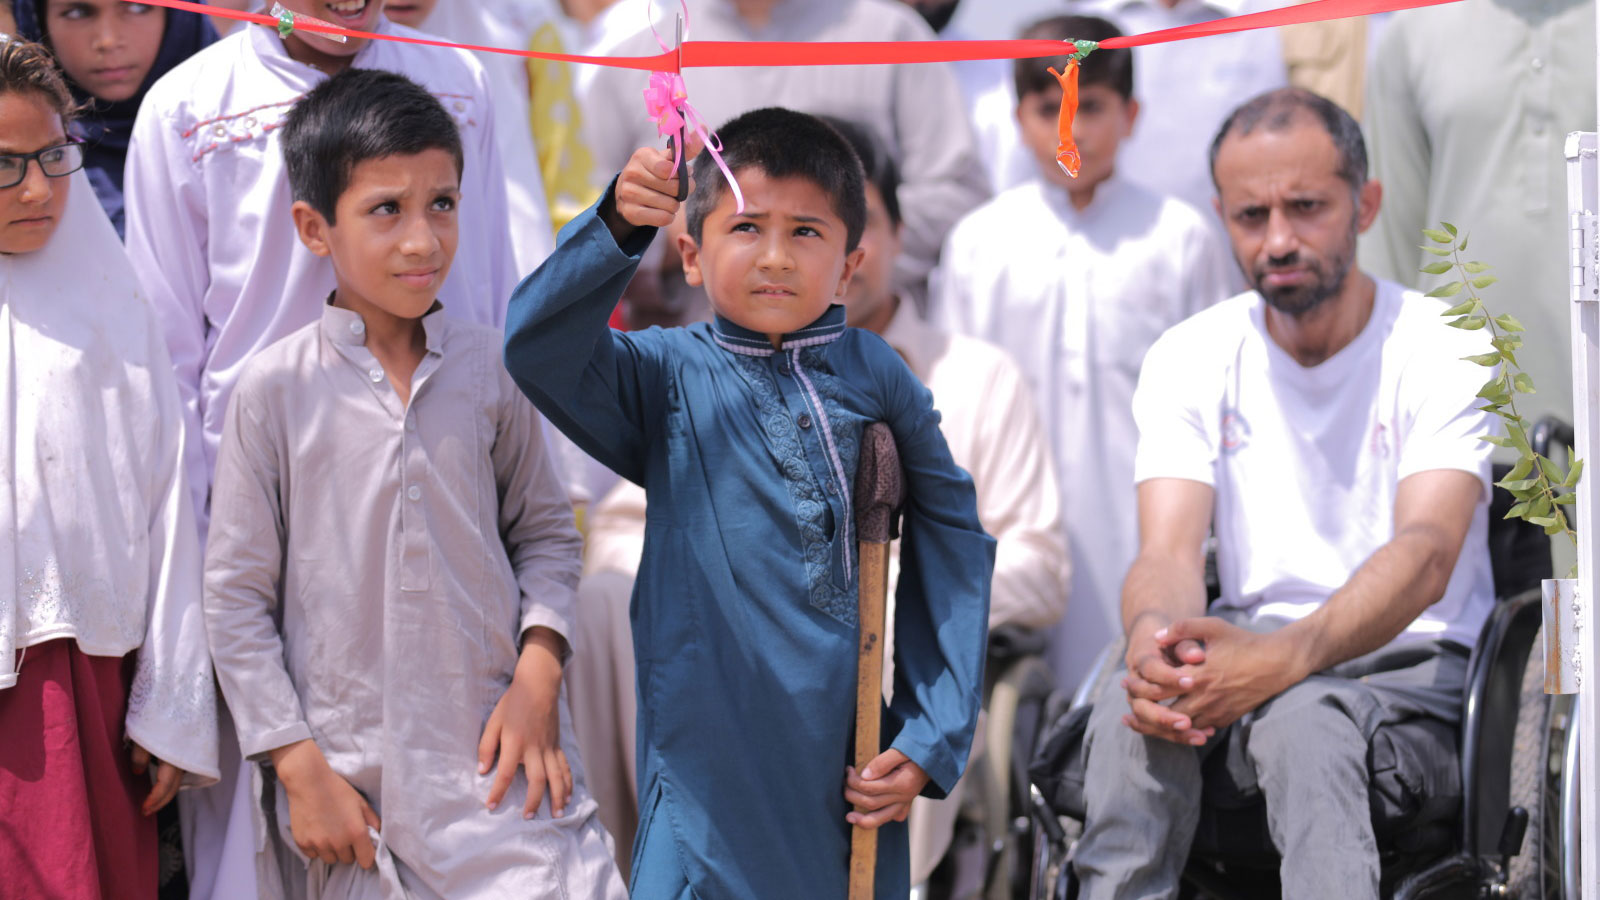 A boy using a crutch reaches to cut a red ribbon with a pair of black scissors a crowd of excited children and adults are behind him